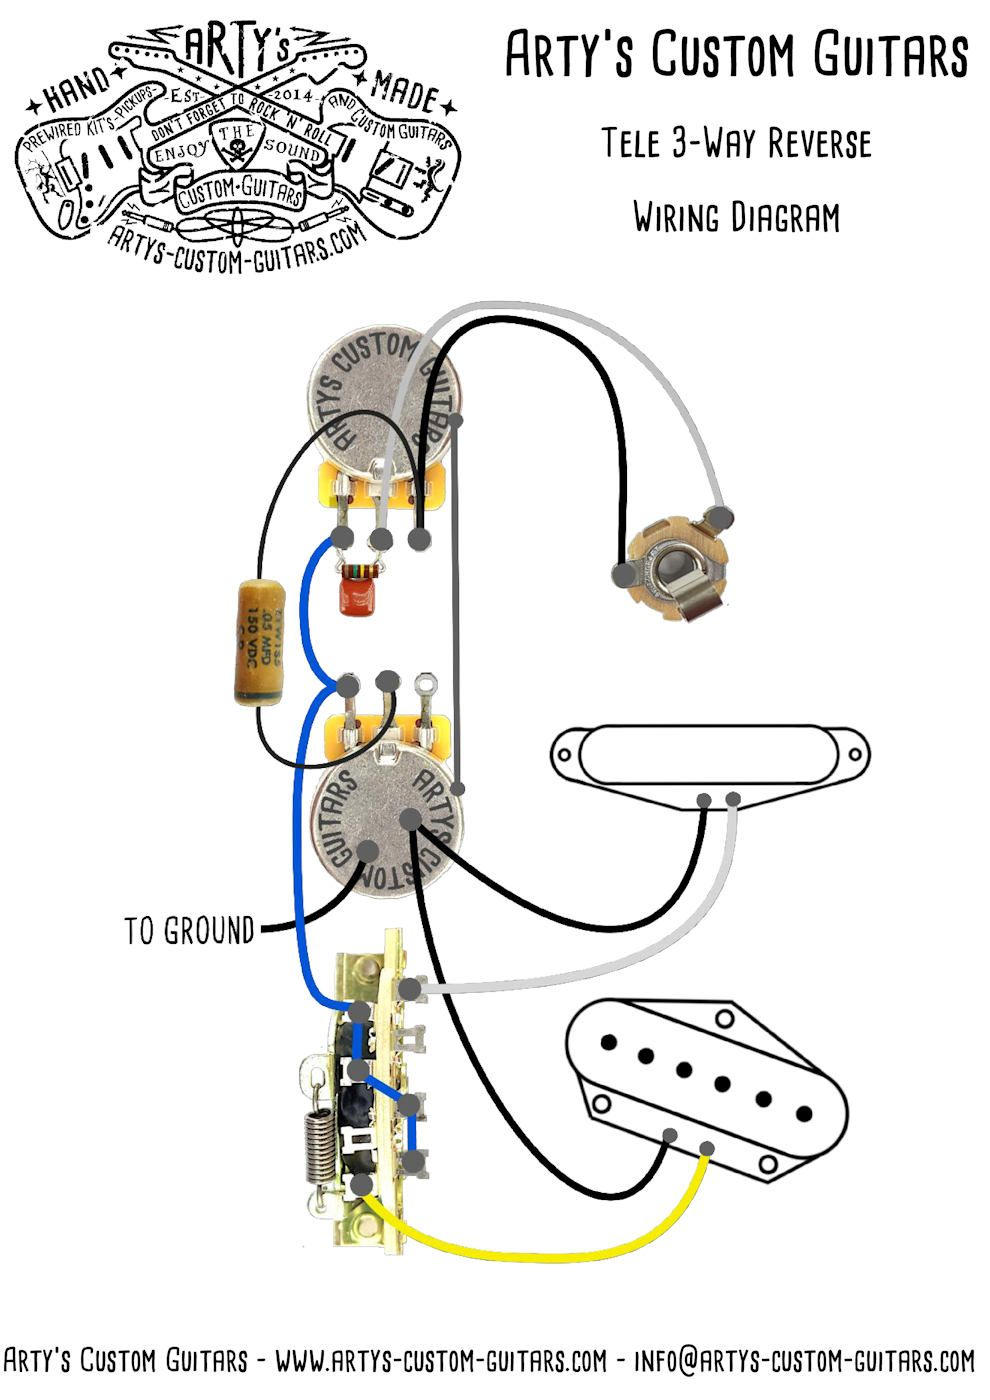 telecaster 3 way reverse wiring diagram arty s custom guitars [ 990 x 1400 Pixel ]